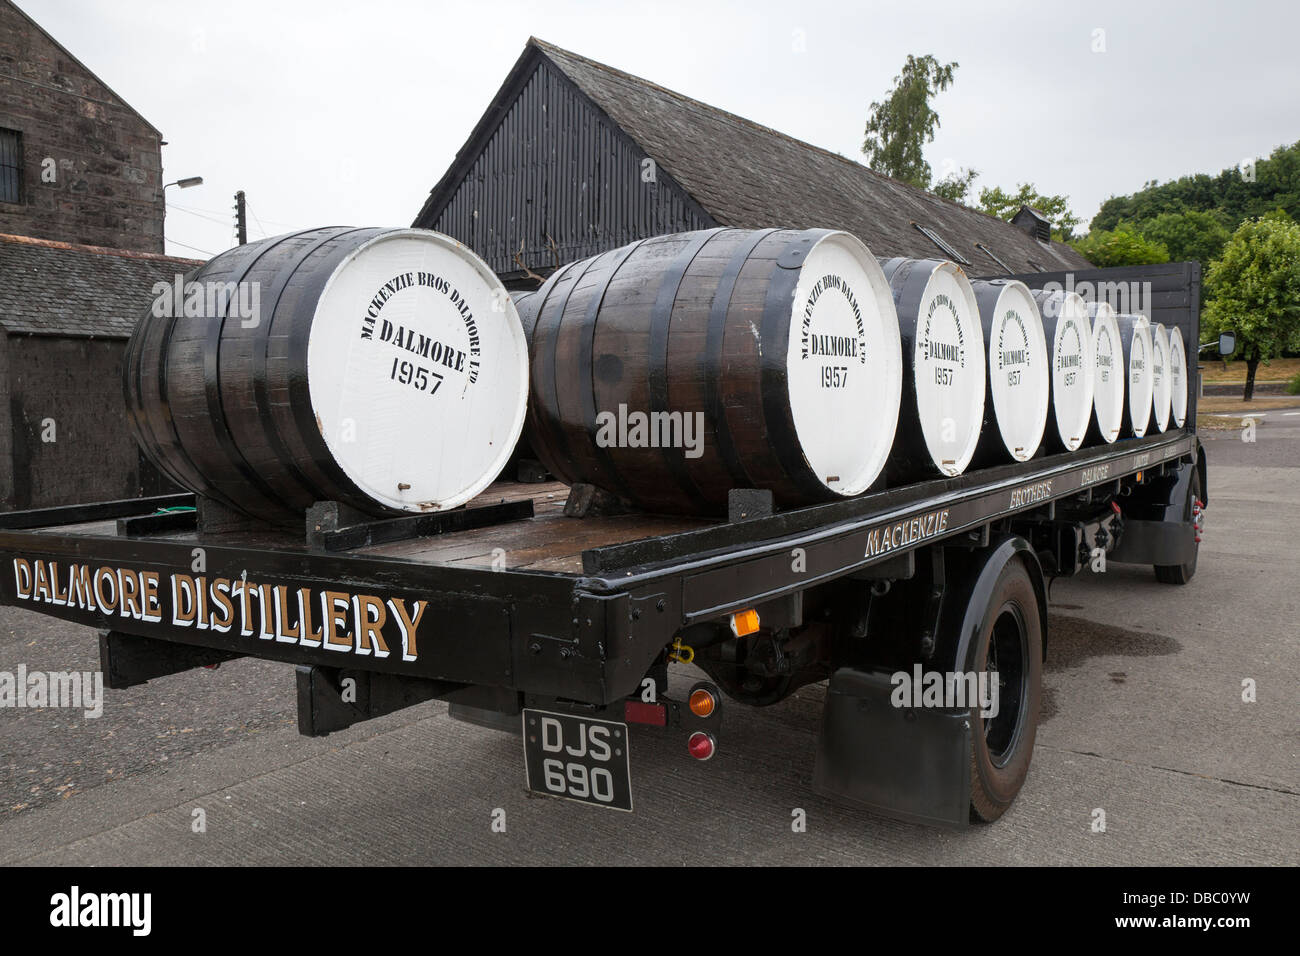 DJS 690 Commer MacKenzie BRO's _Large whisky casks at the Dalmore is a distillery in Alness, Scotland, located - Stock Image